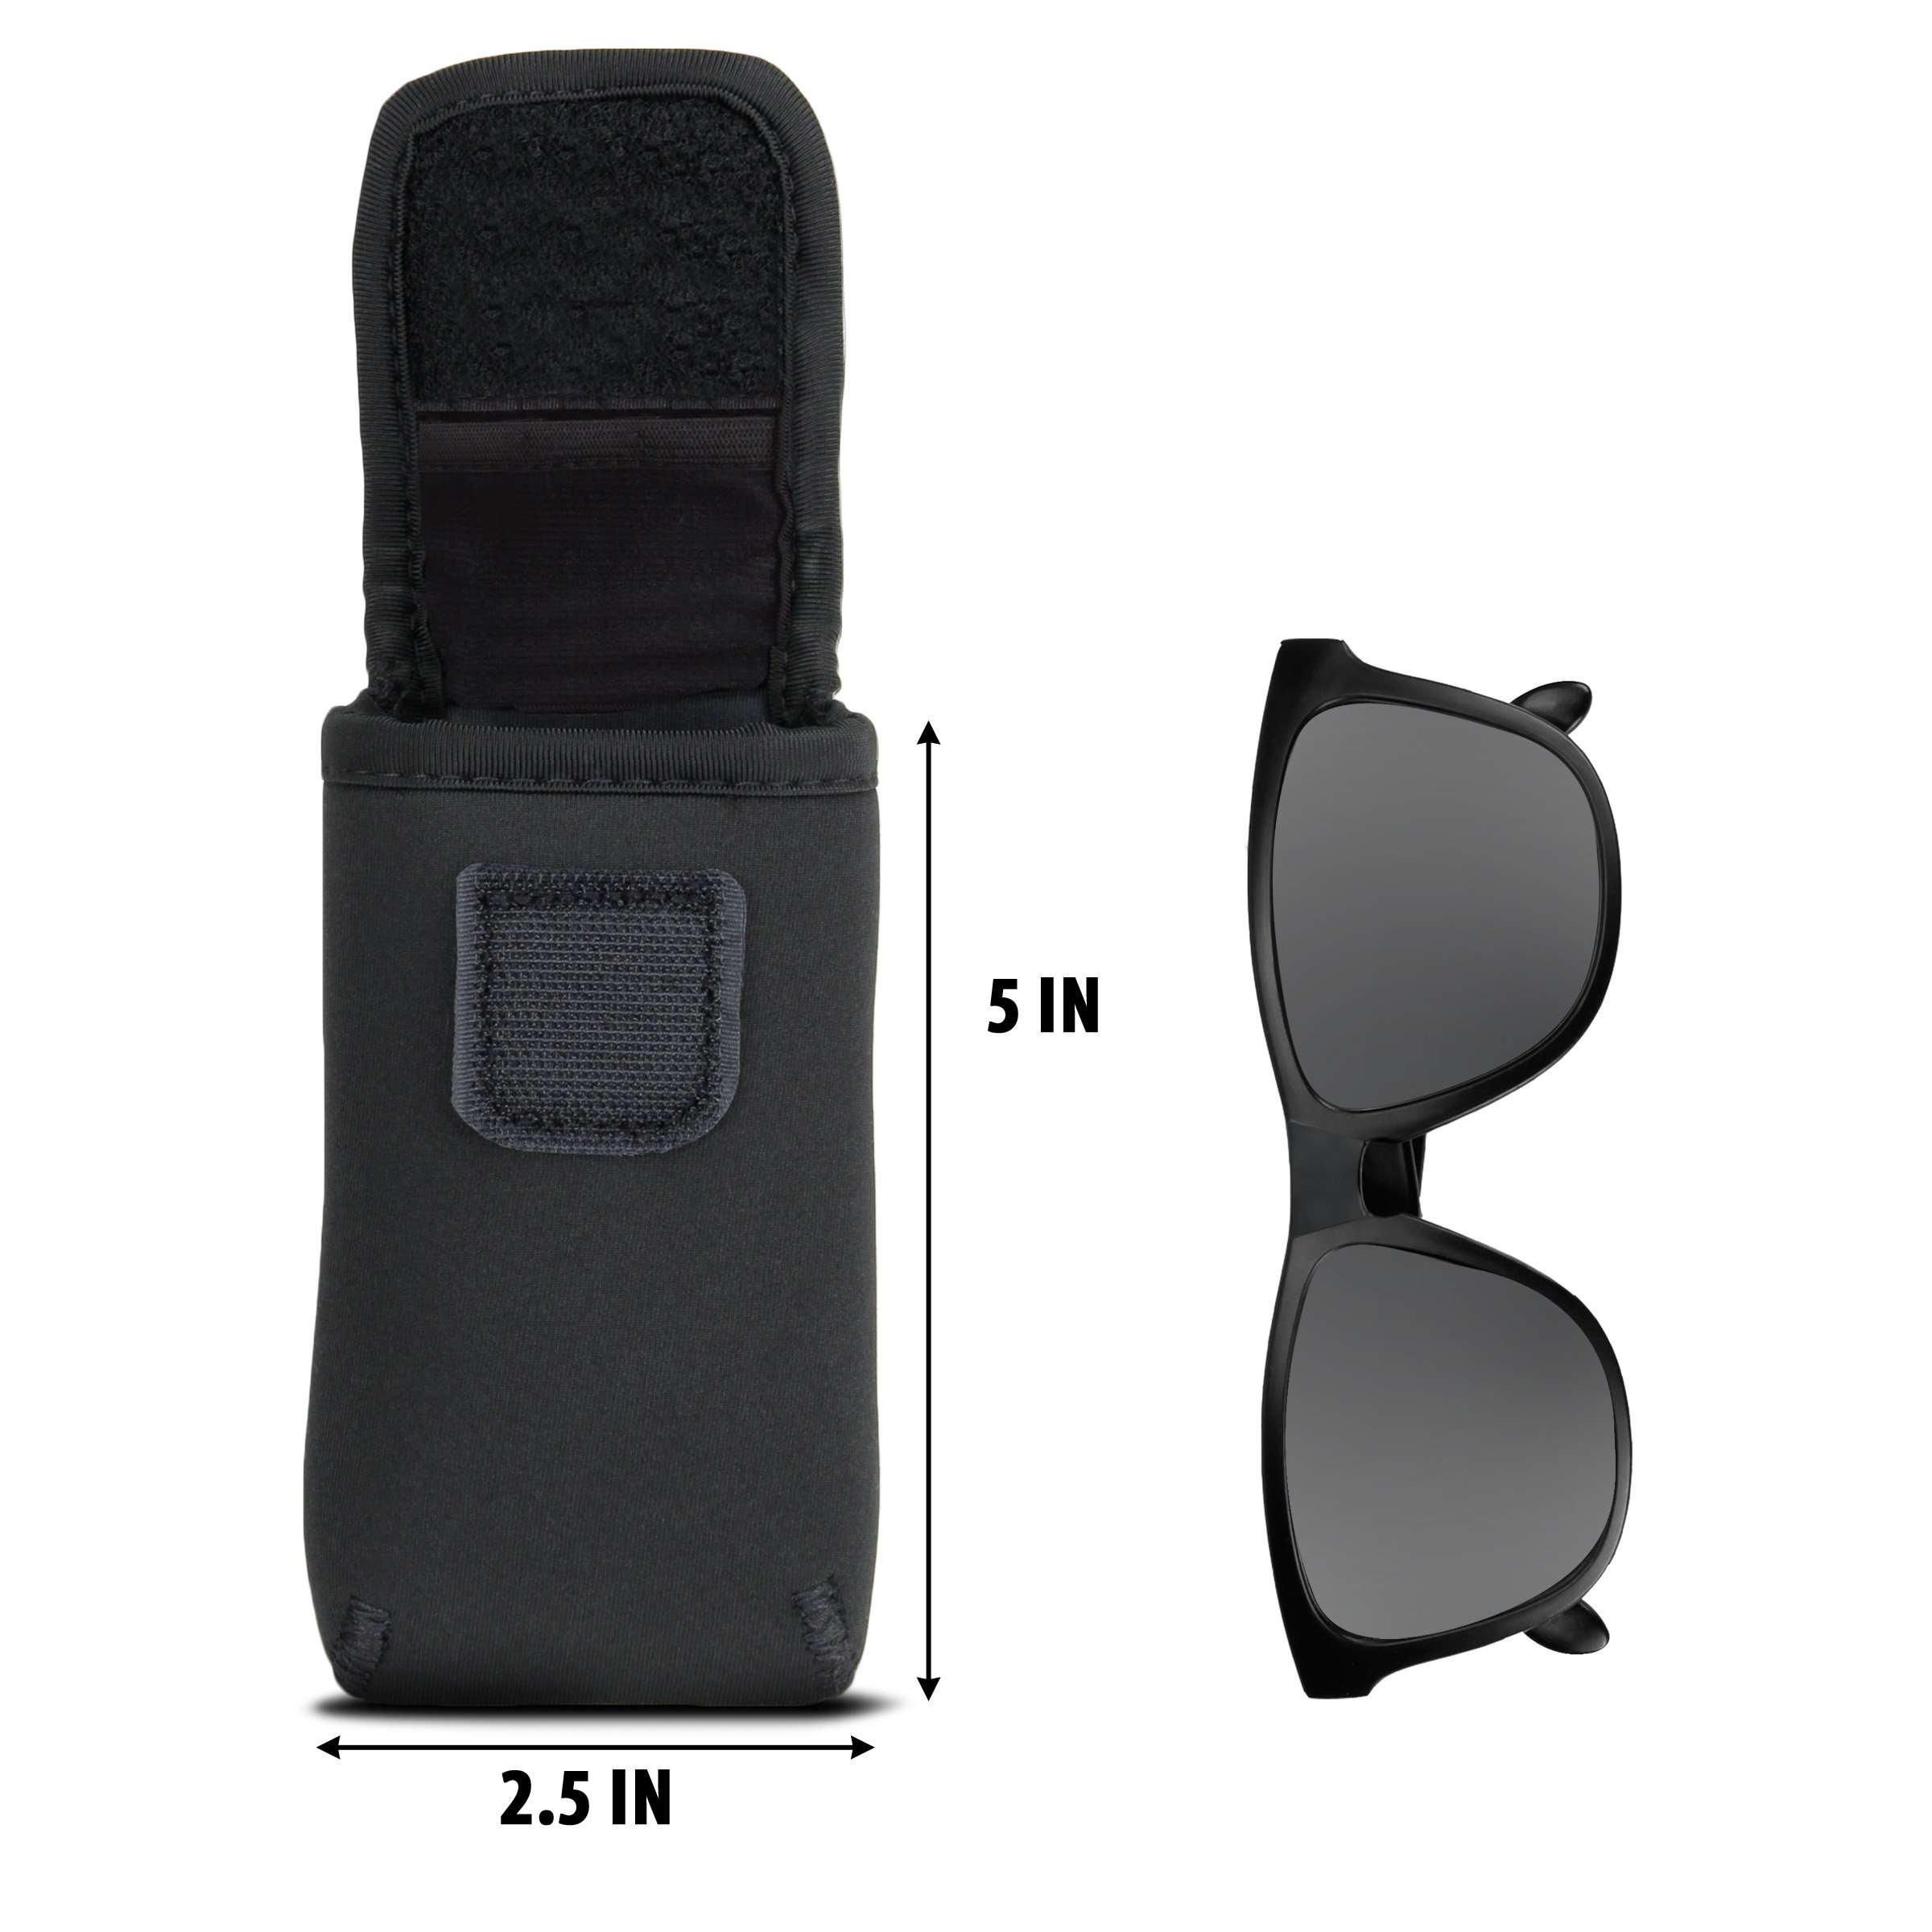 Sunglasses and Eyeglasses Case by USA Gear - Fits Designer Glasses & Shades by USA Gear (Image #3)